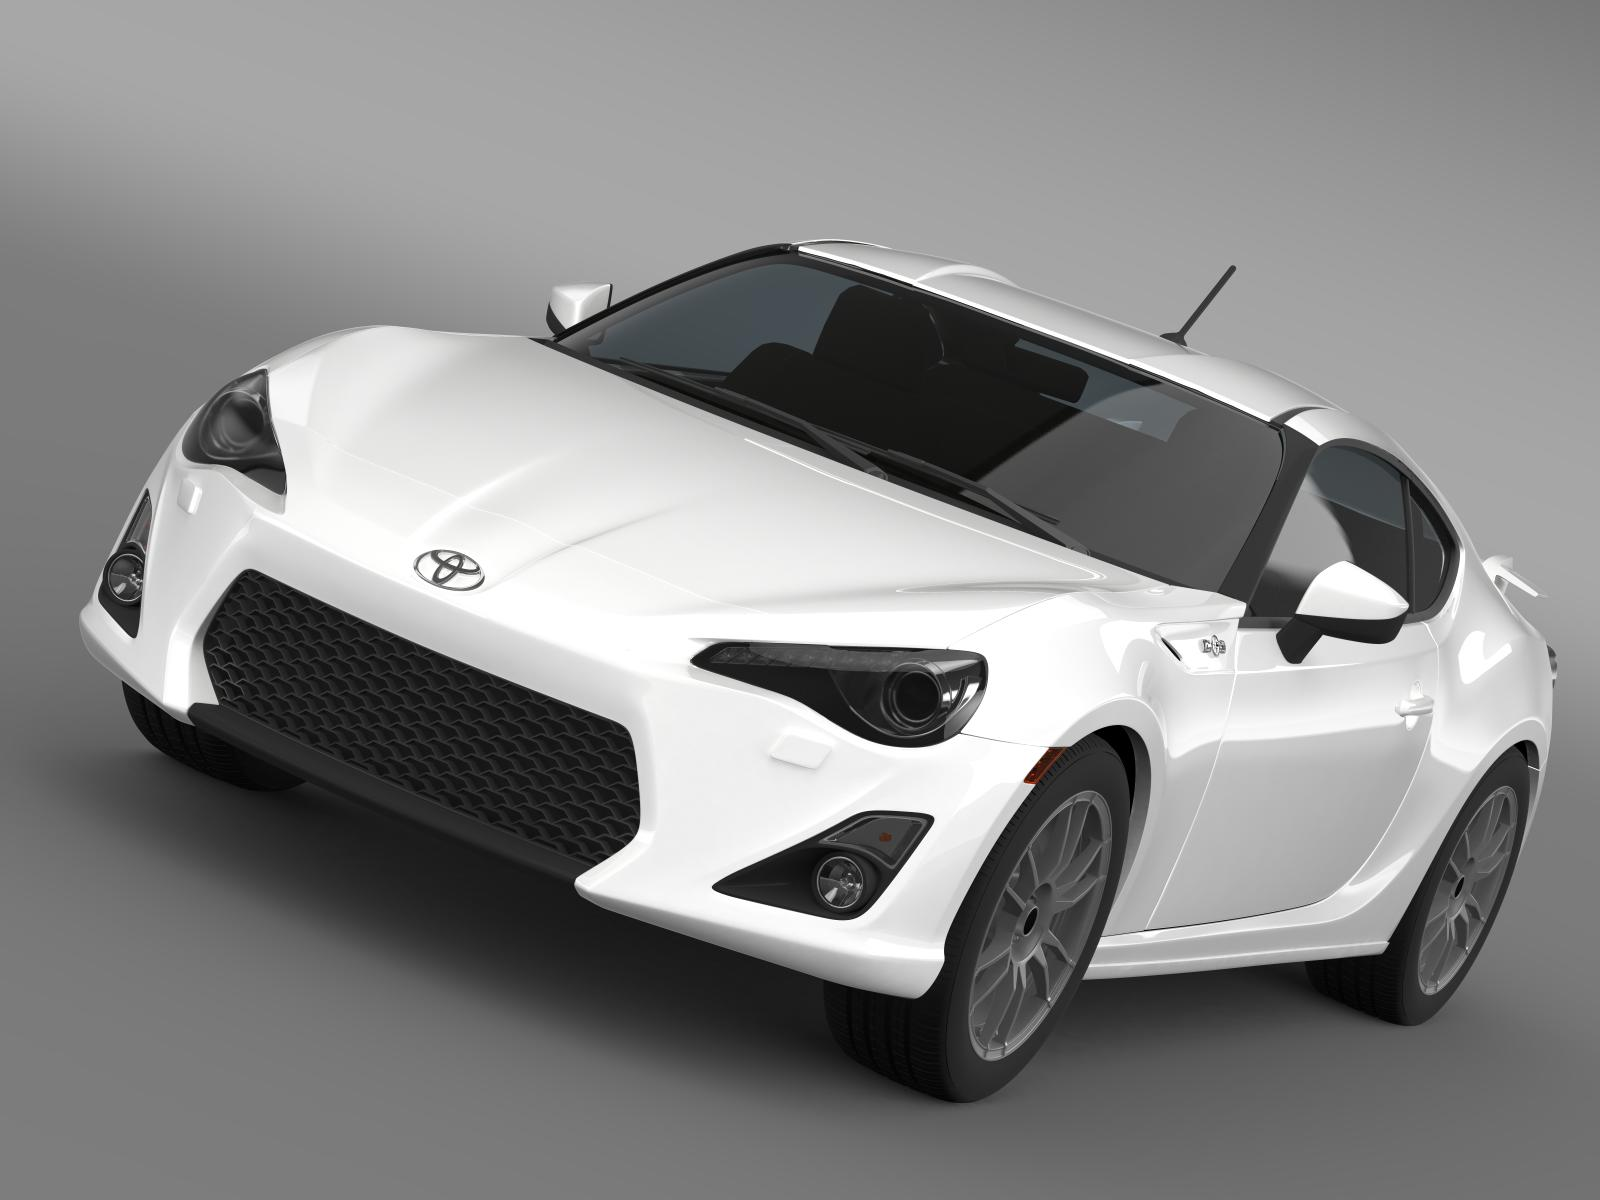 toyota gt 86 cup edition 2014 3d modelo 3ds max fbx c4d lwo ma mb hrc xsi obj 163337